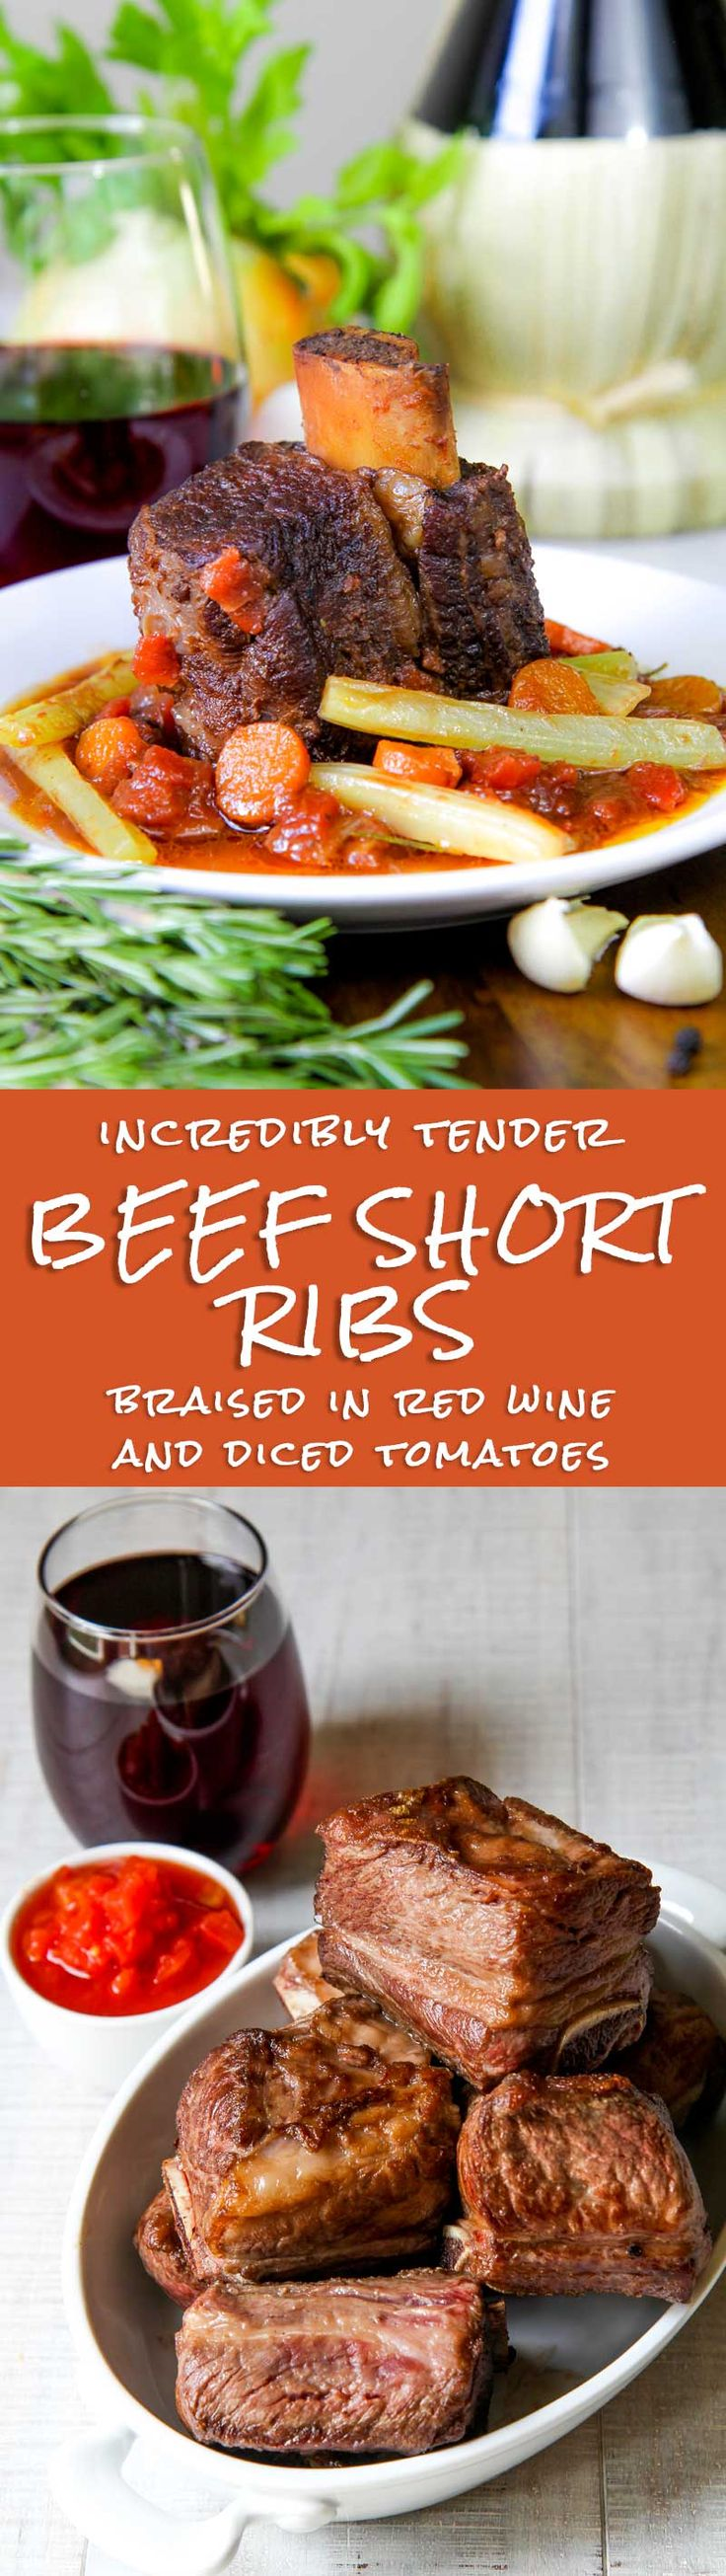 23 best images about Beef recipes on Pinterest | Beef ...